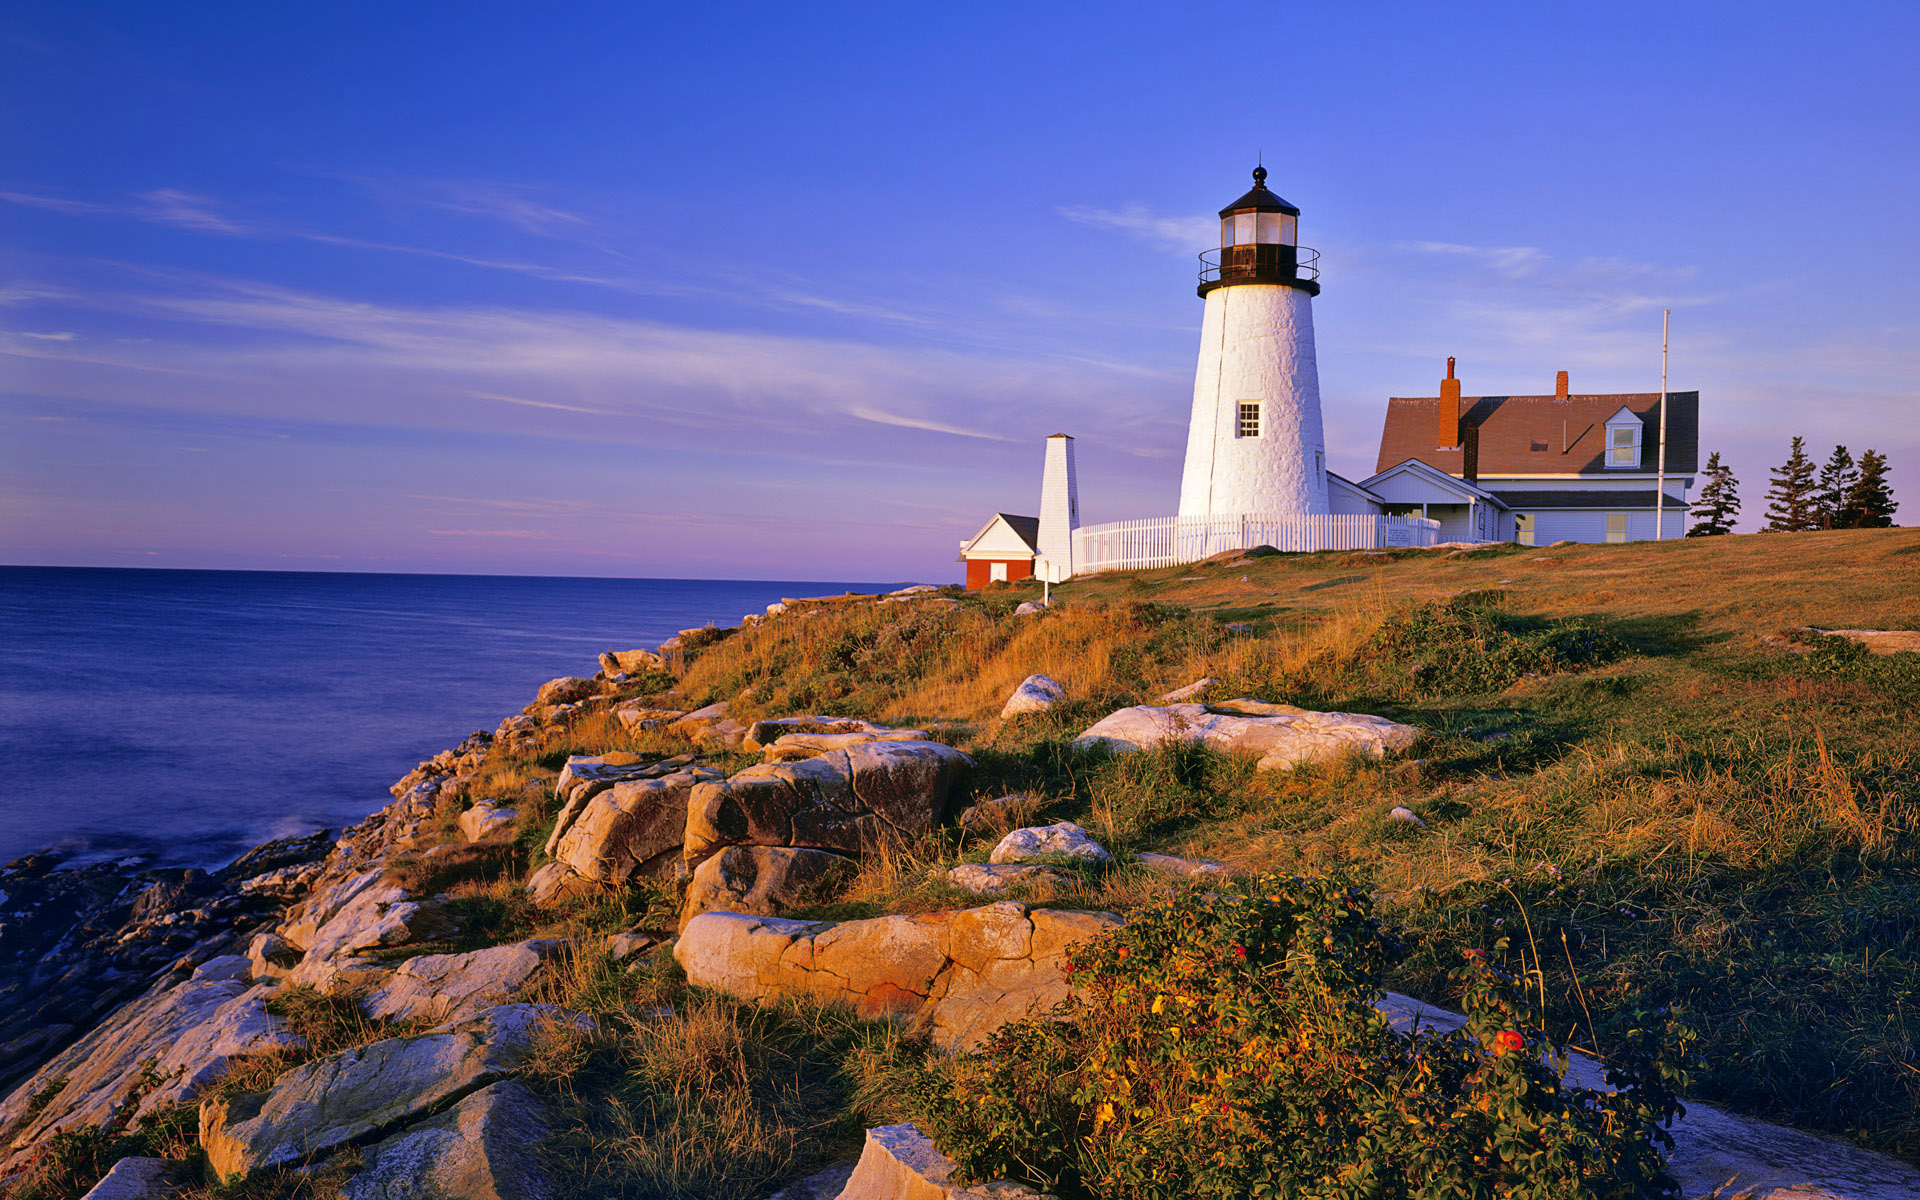 Pemaquid Lighthouse and Cliffs; Maine, USA